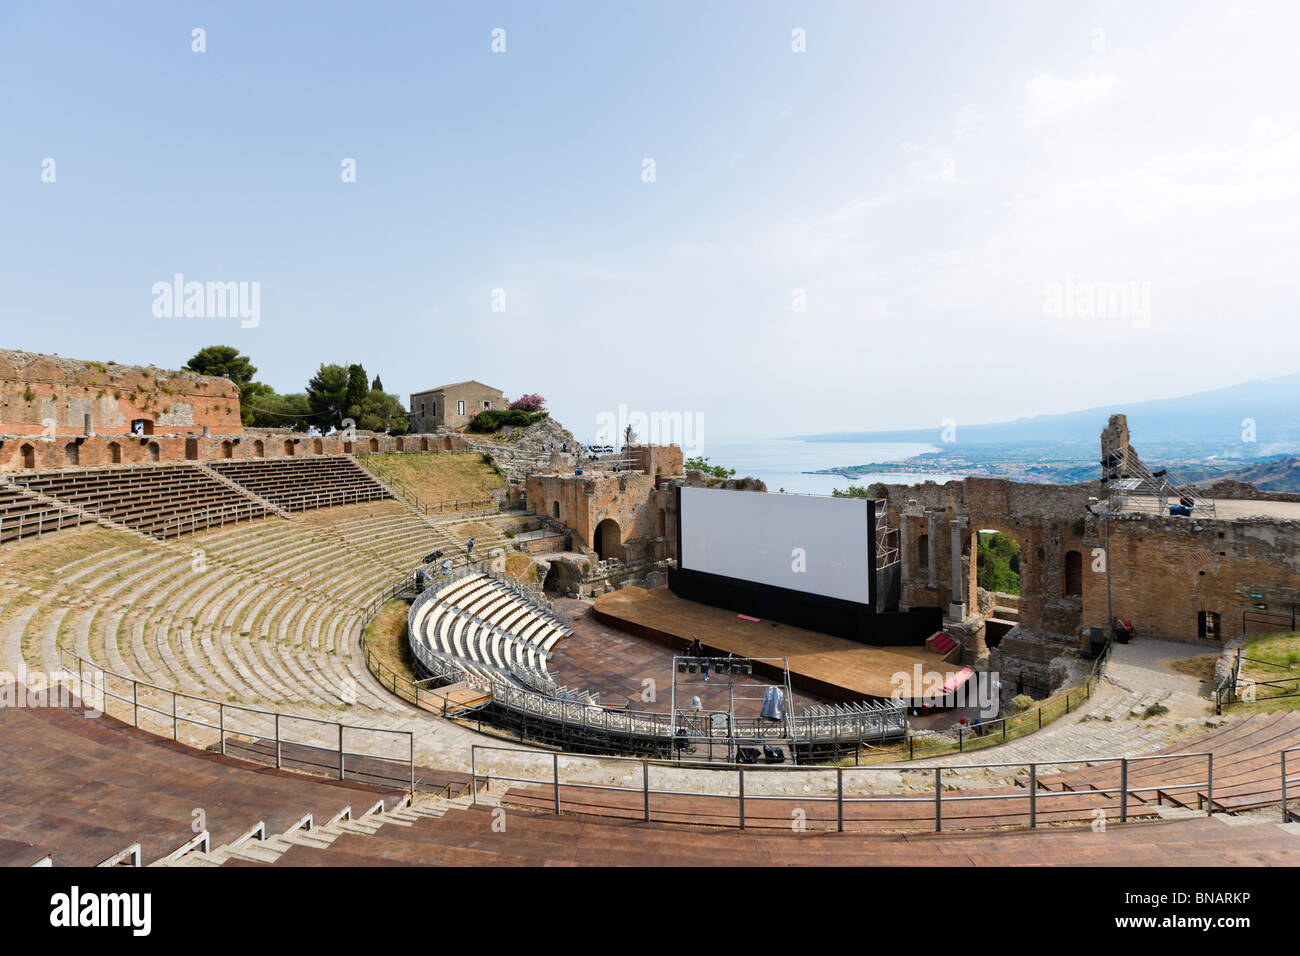 The Greek Theatre (Teatro Greco) set up for the FilmFest film festival in June 2010, Taormina, Sicily, Italy - Stock Image